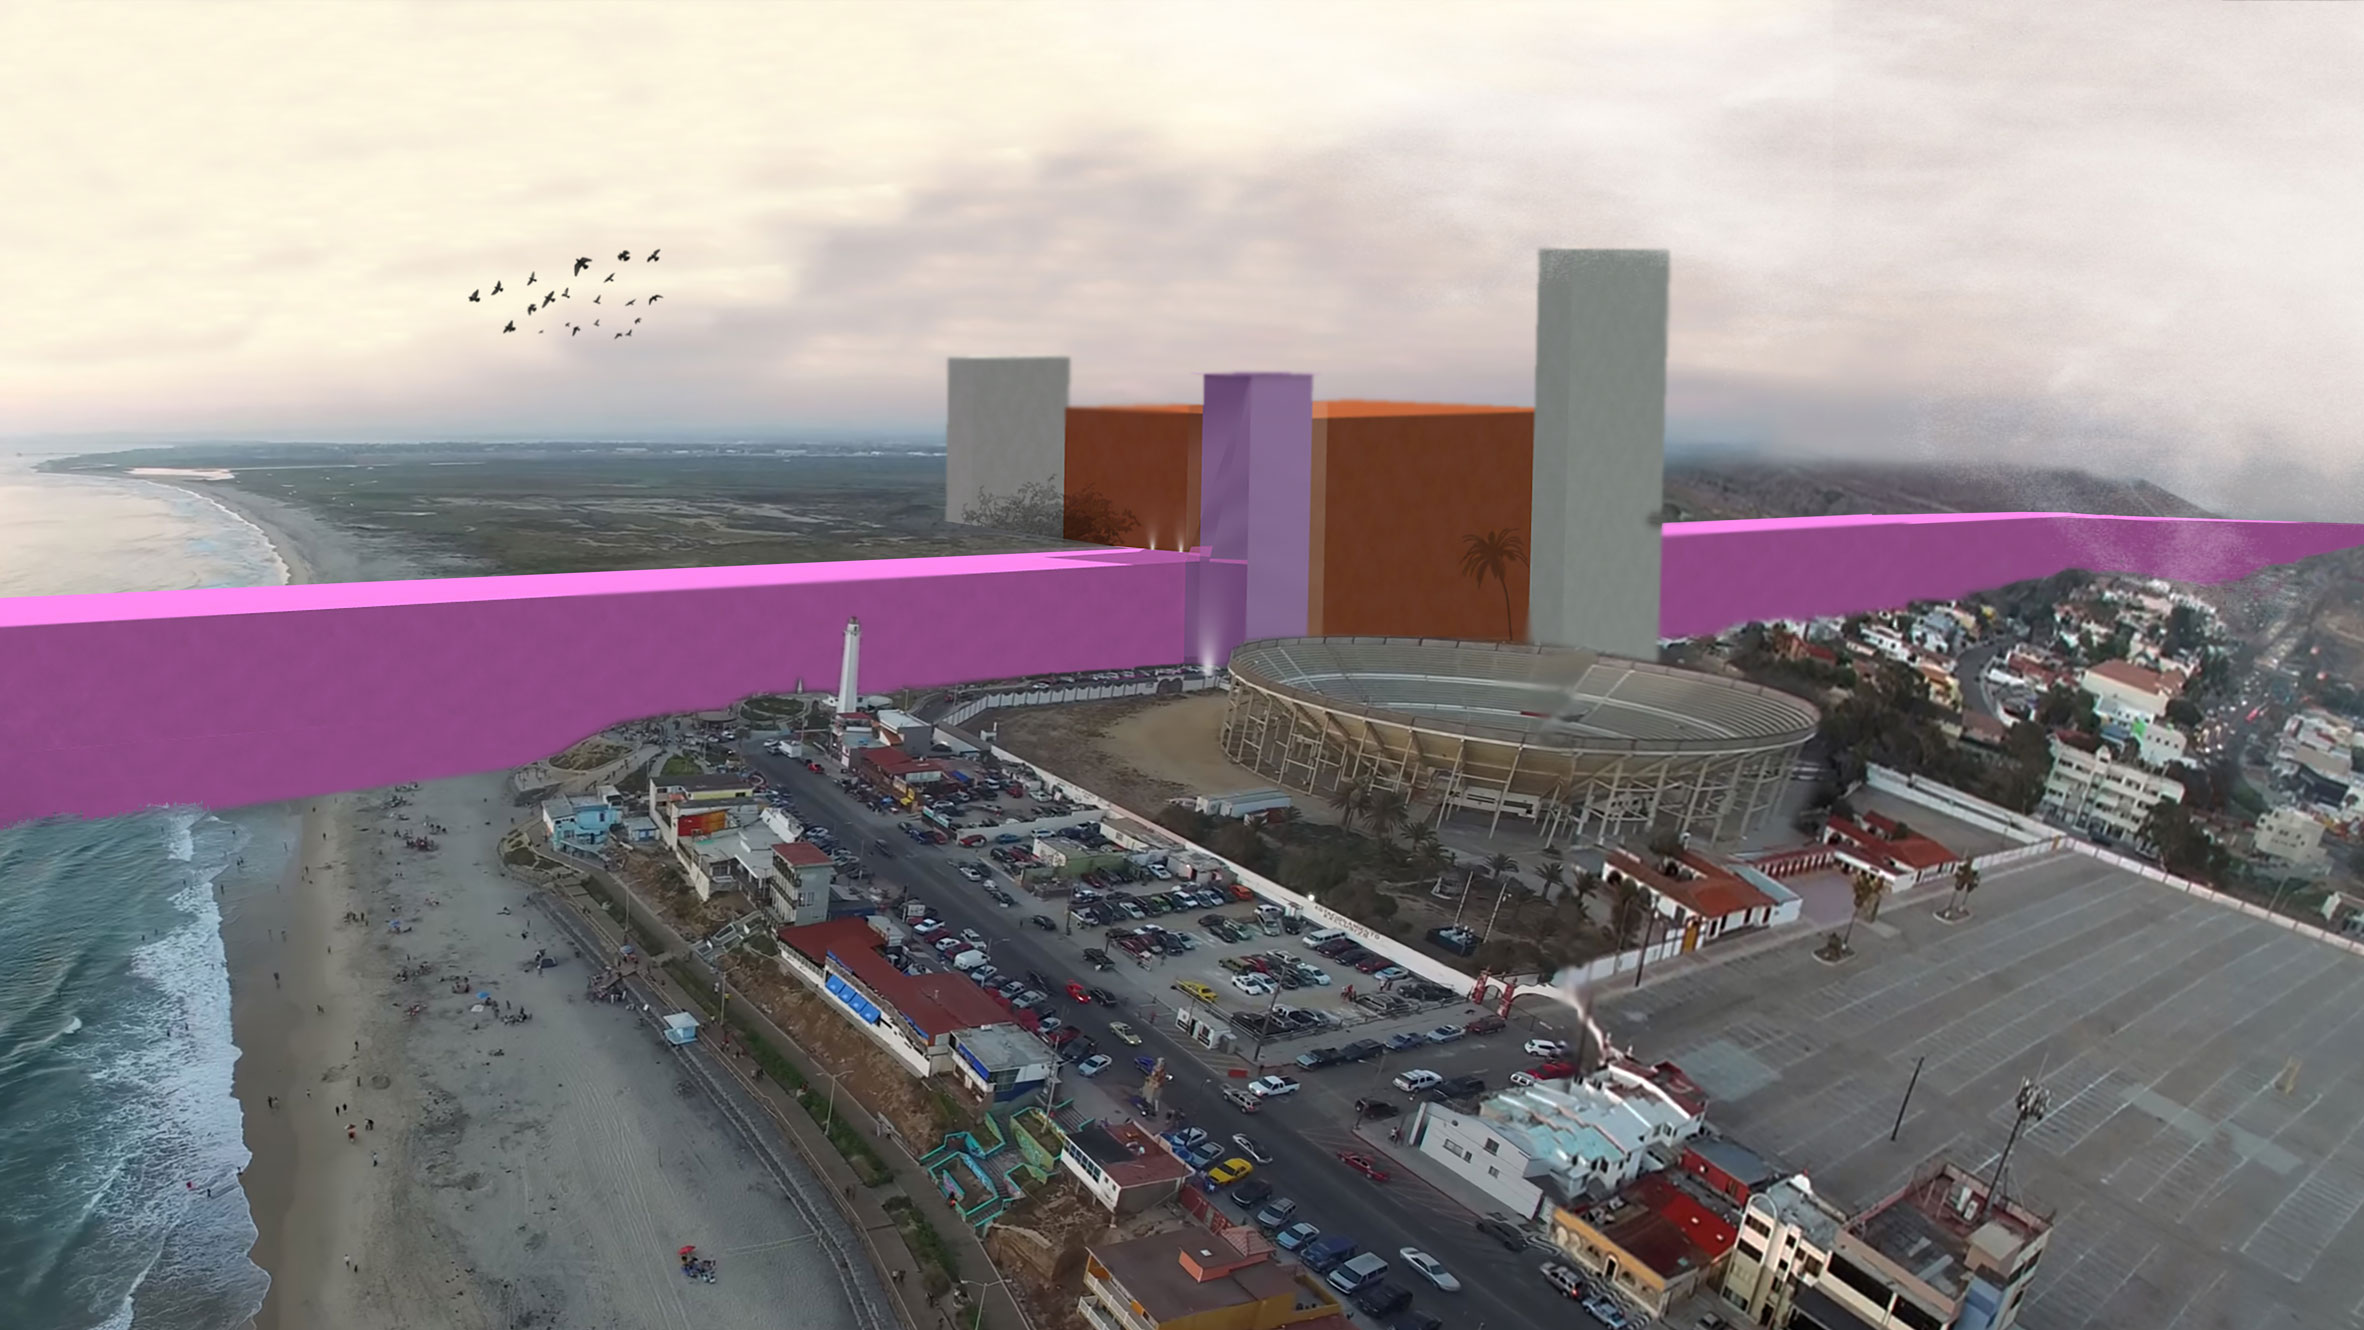 Trump S Mexican Border Wall Envisioned As Barragan Inspired Pink Barrier